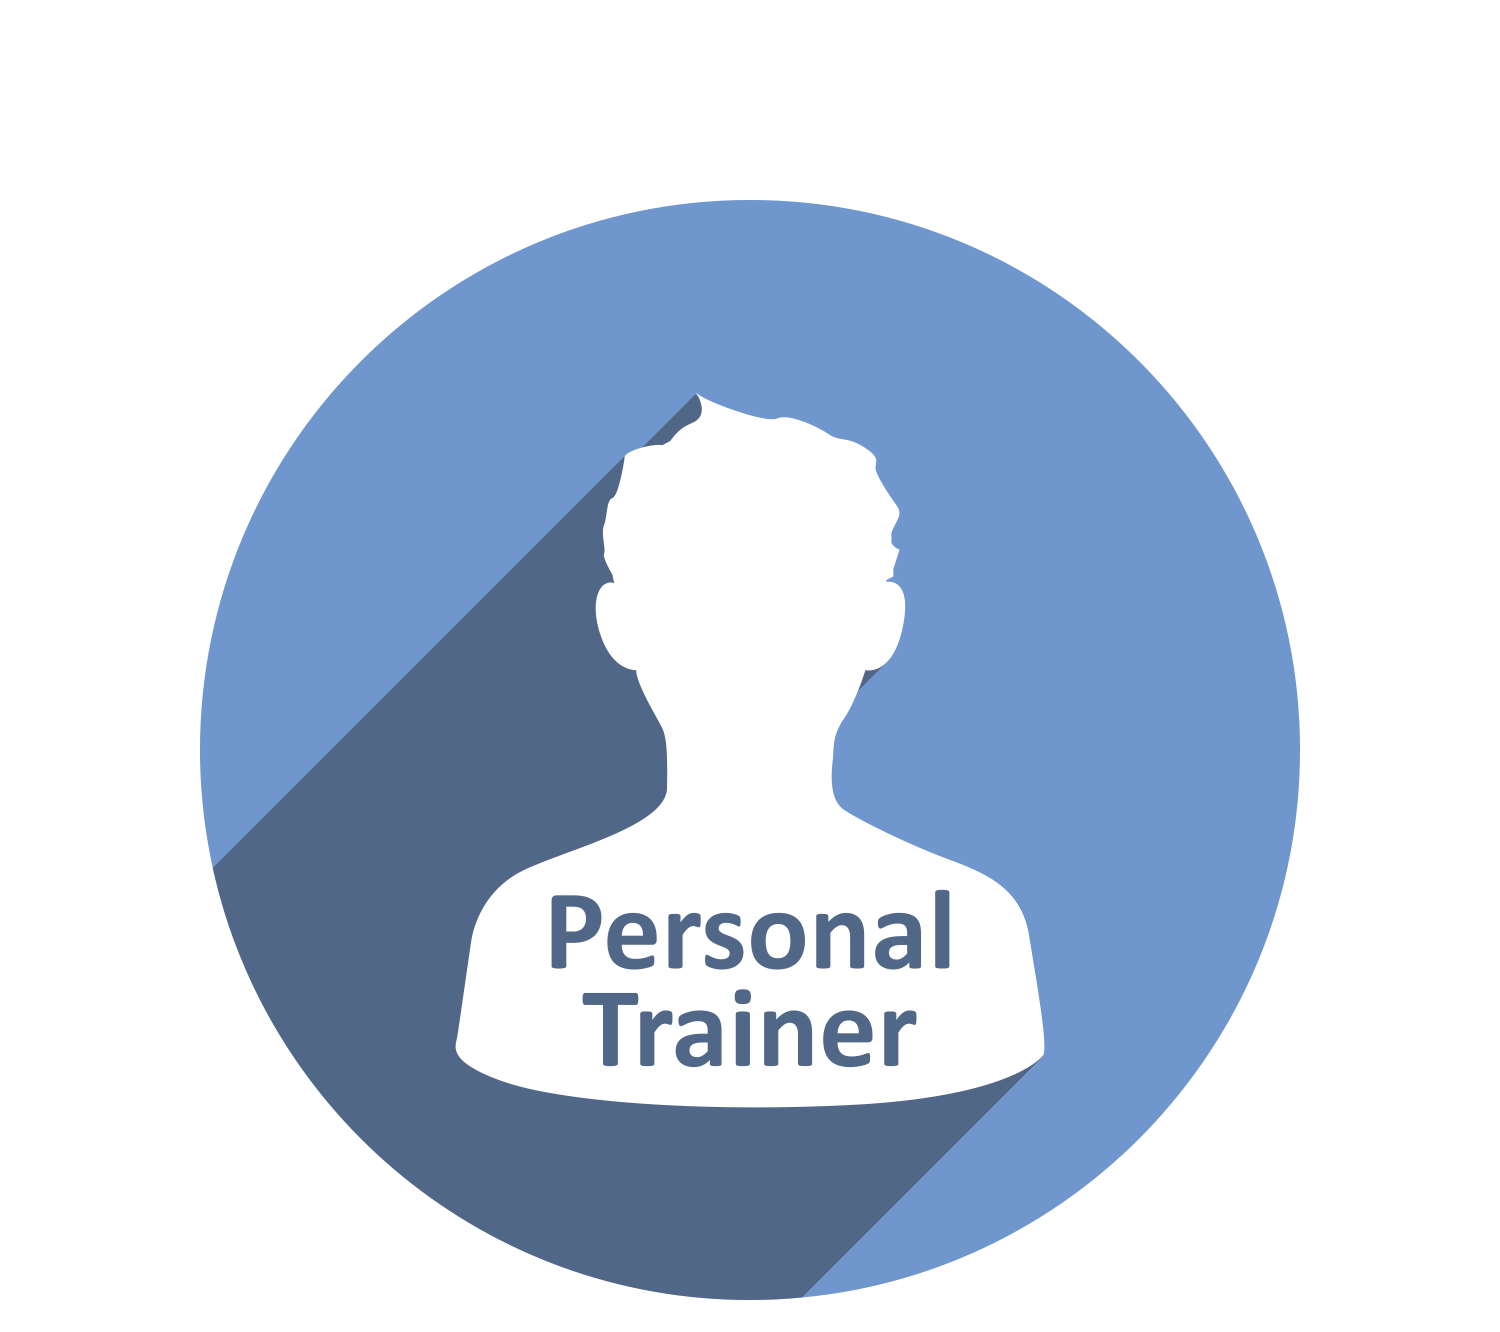 personal-trainer-icon.png